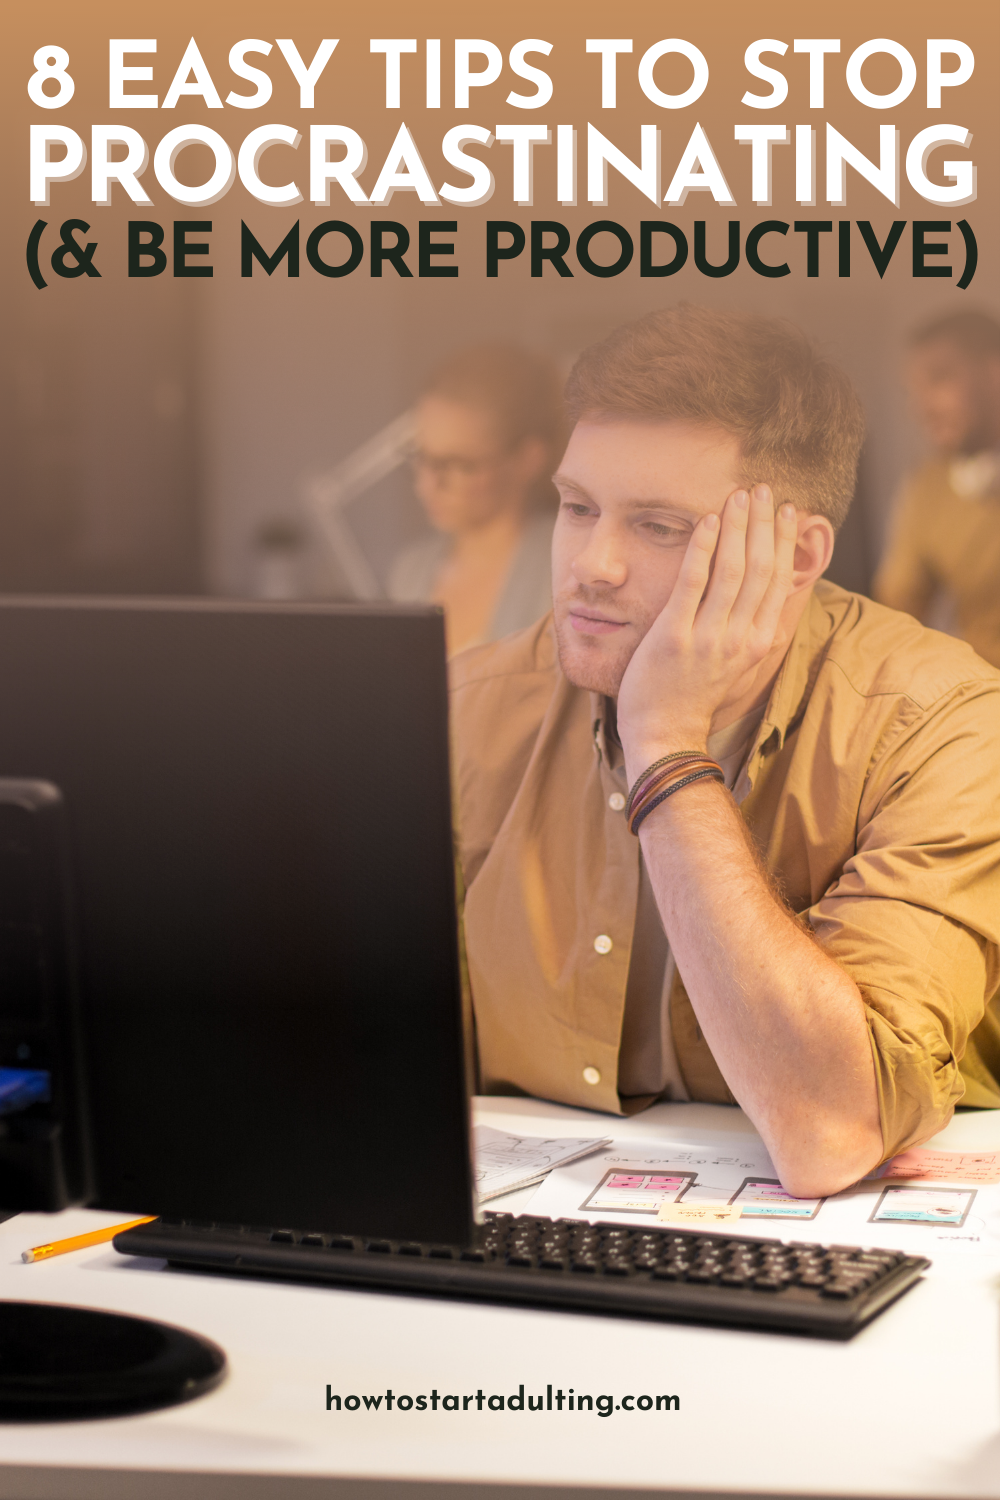 Easy Tips To Stop Procrastinating And Be More Productive